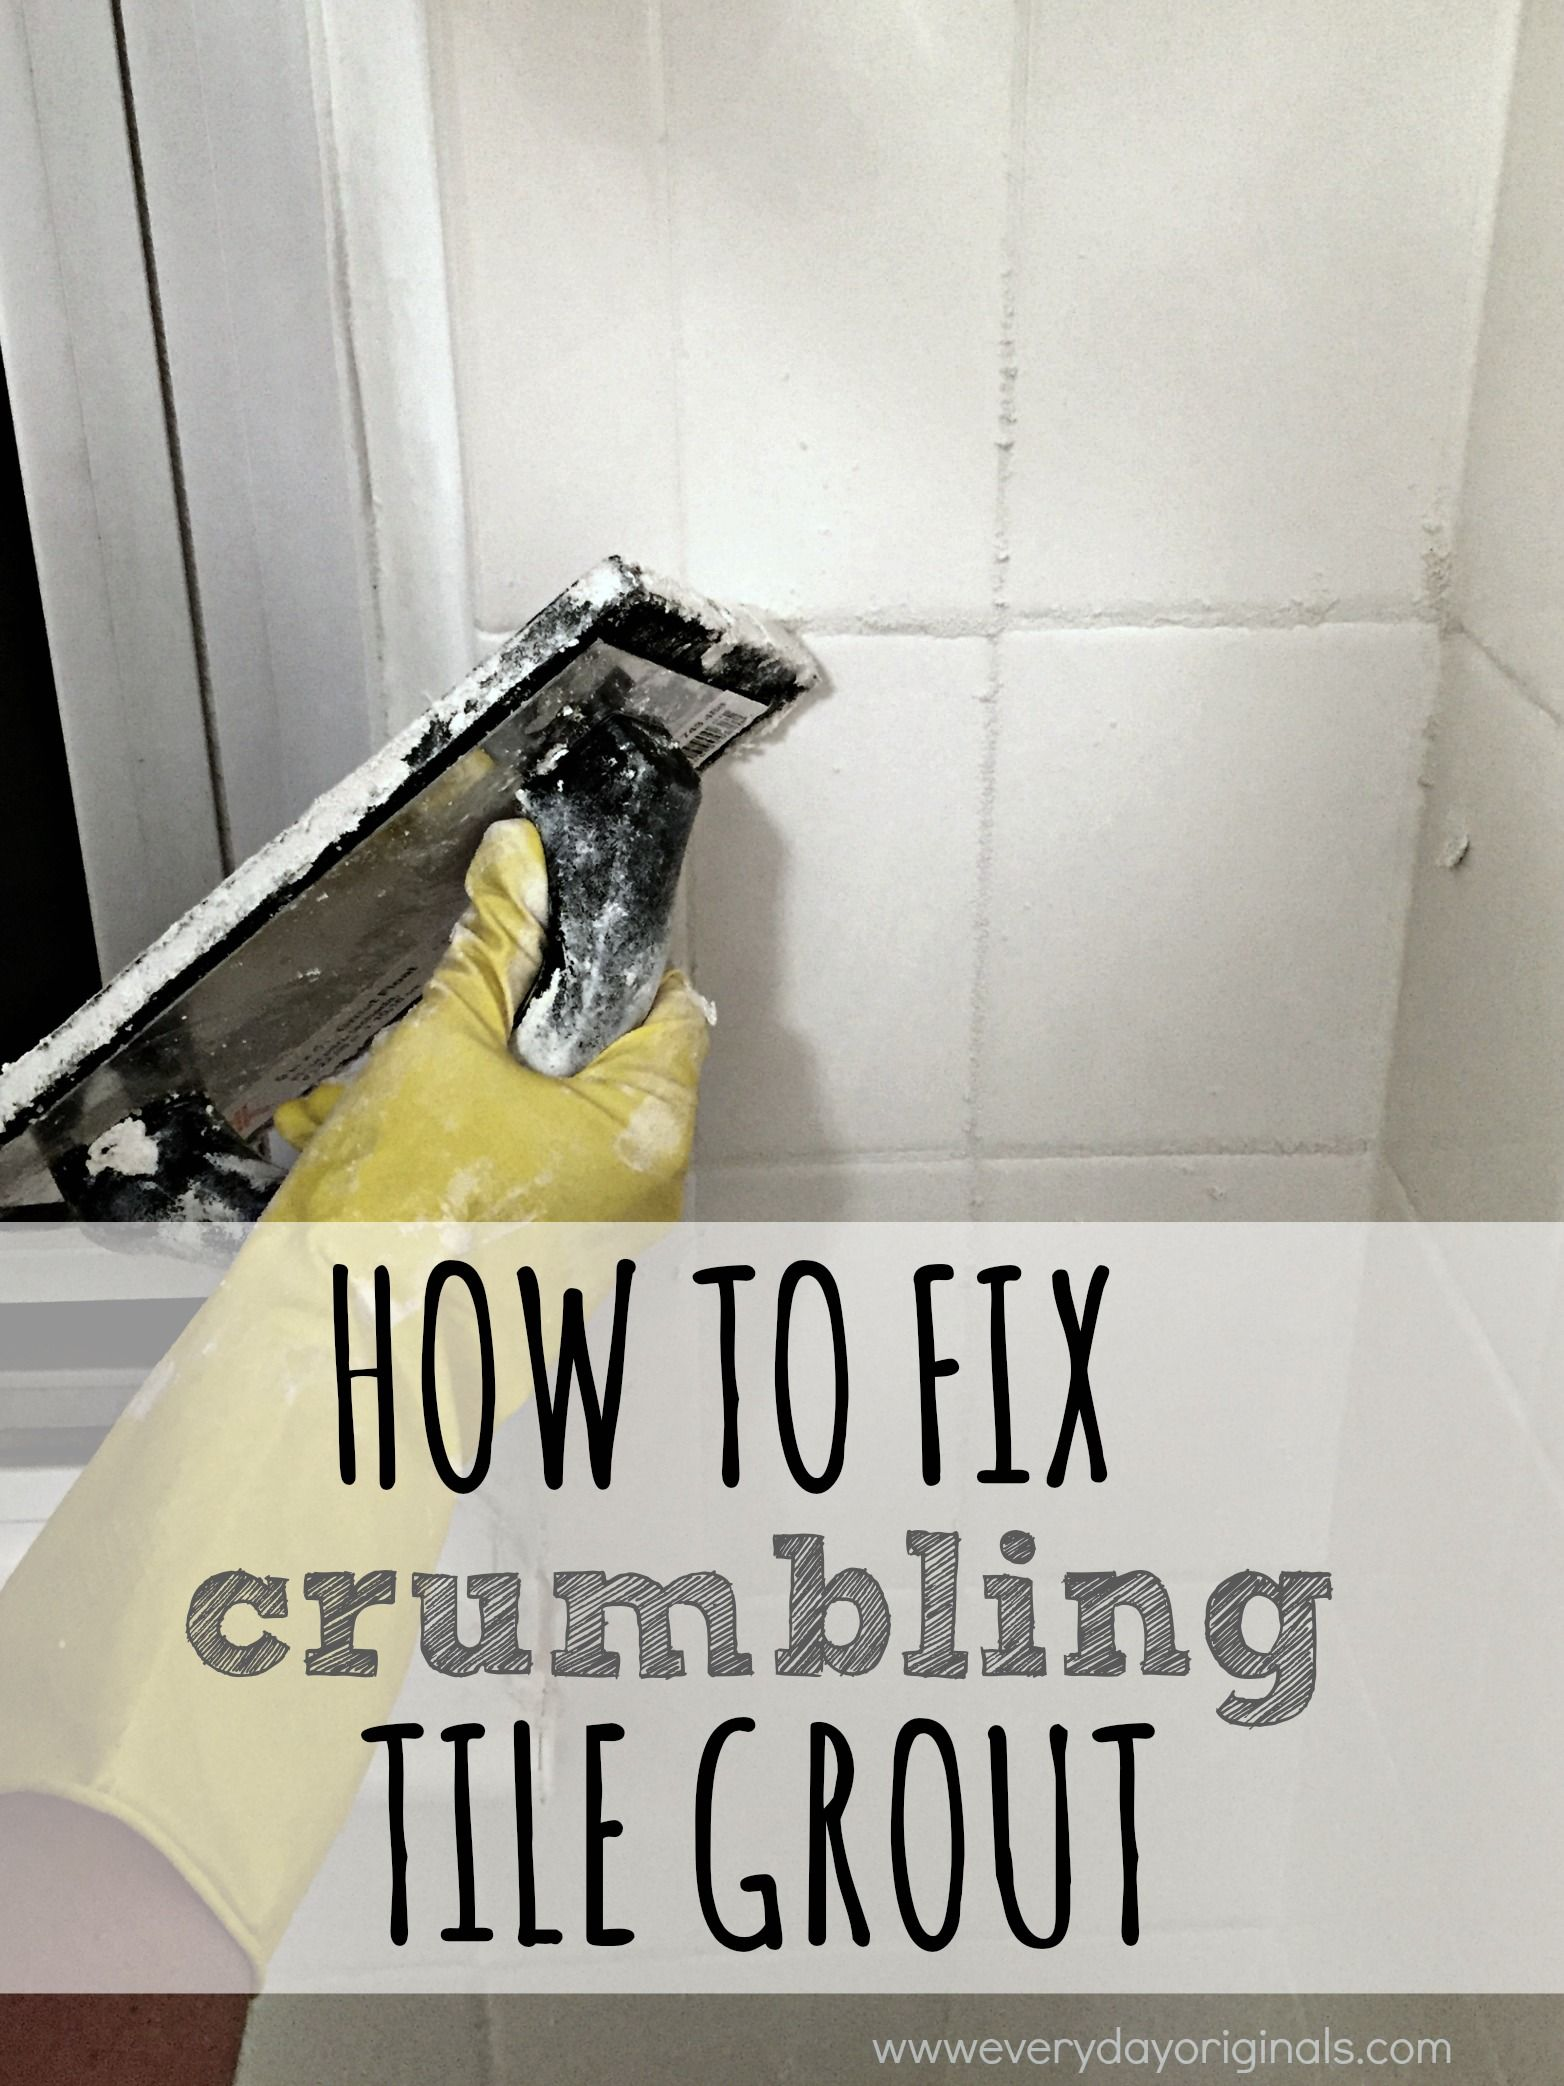 How To Fix Crumbling Tile Grout An Easy Fix For A Problem Many Bathrooms Experience